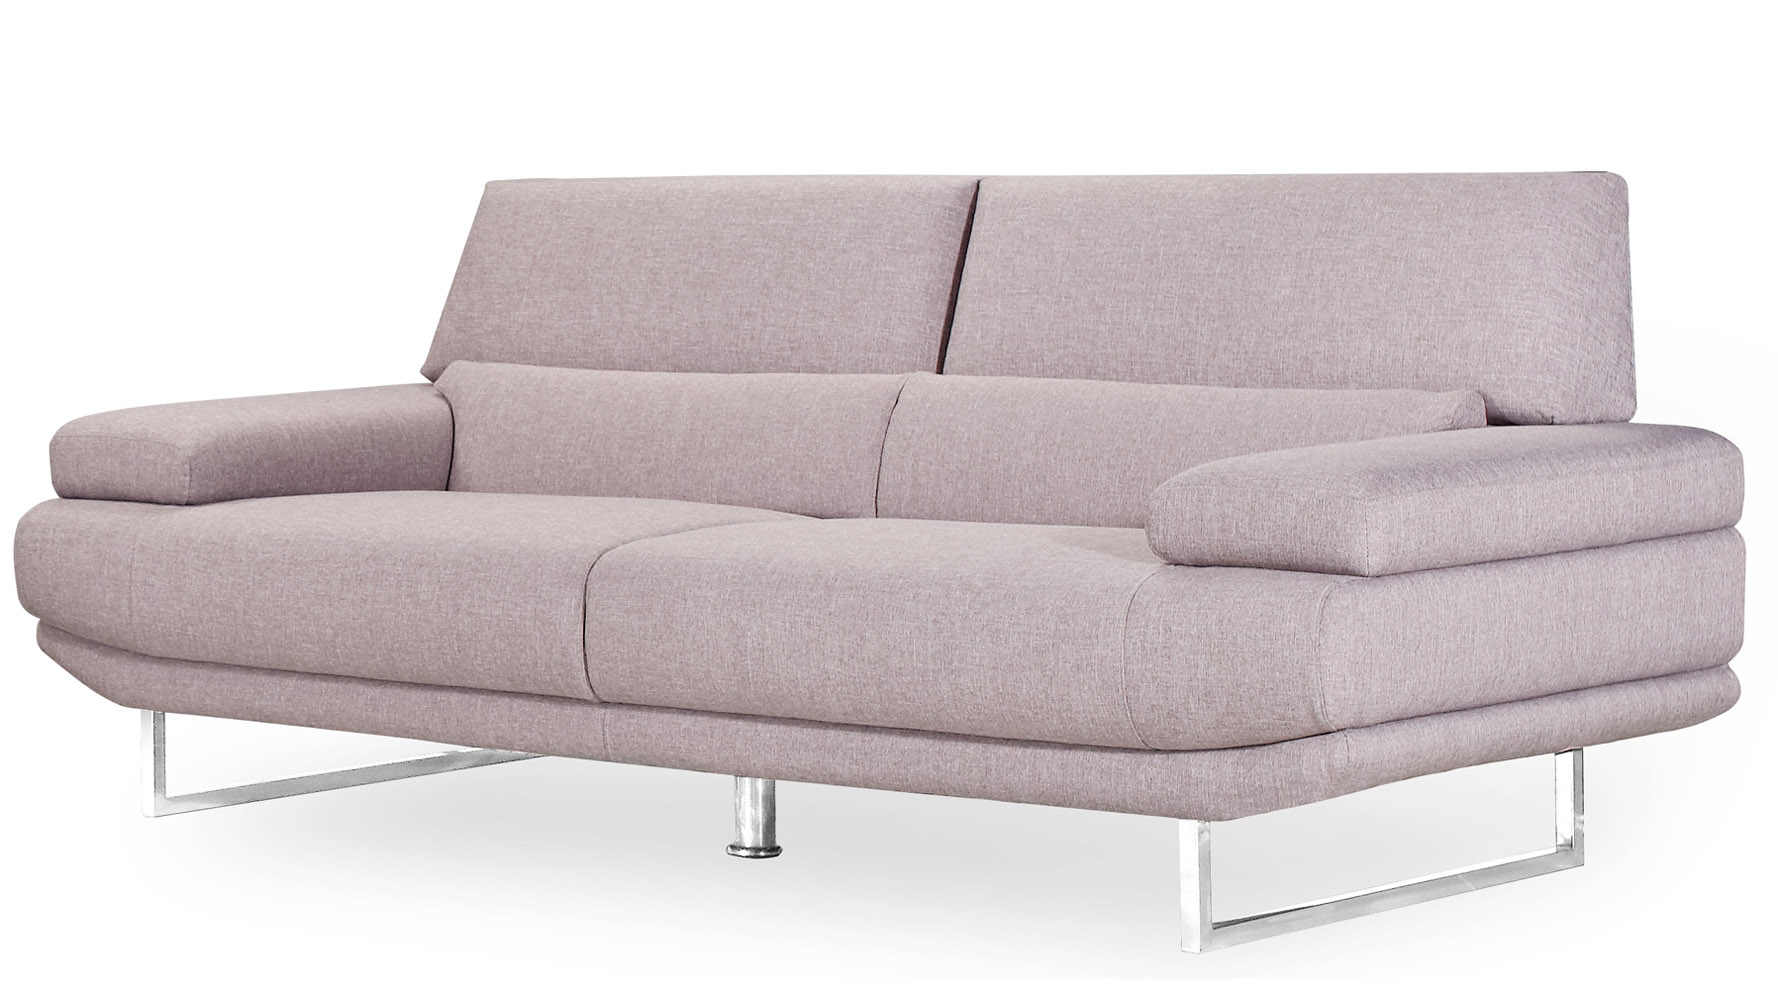 Modern Taupe Fabric Upholstered 2 Piece Sofa Set With Stainless Steel Legs  | Zuri Furniture